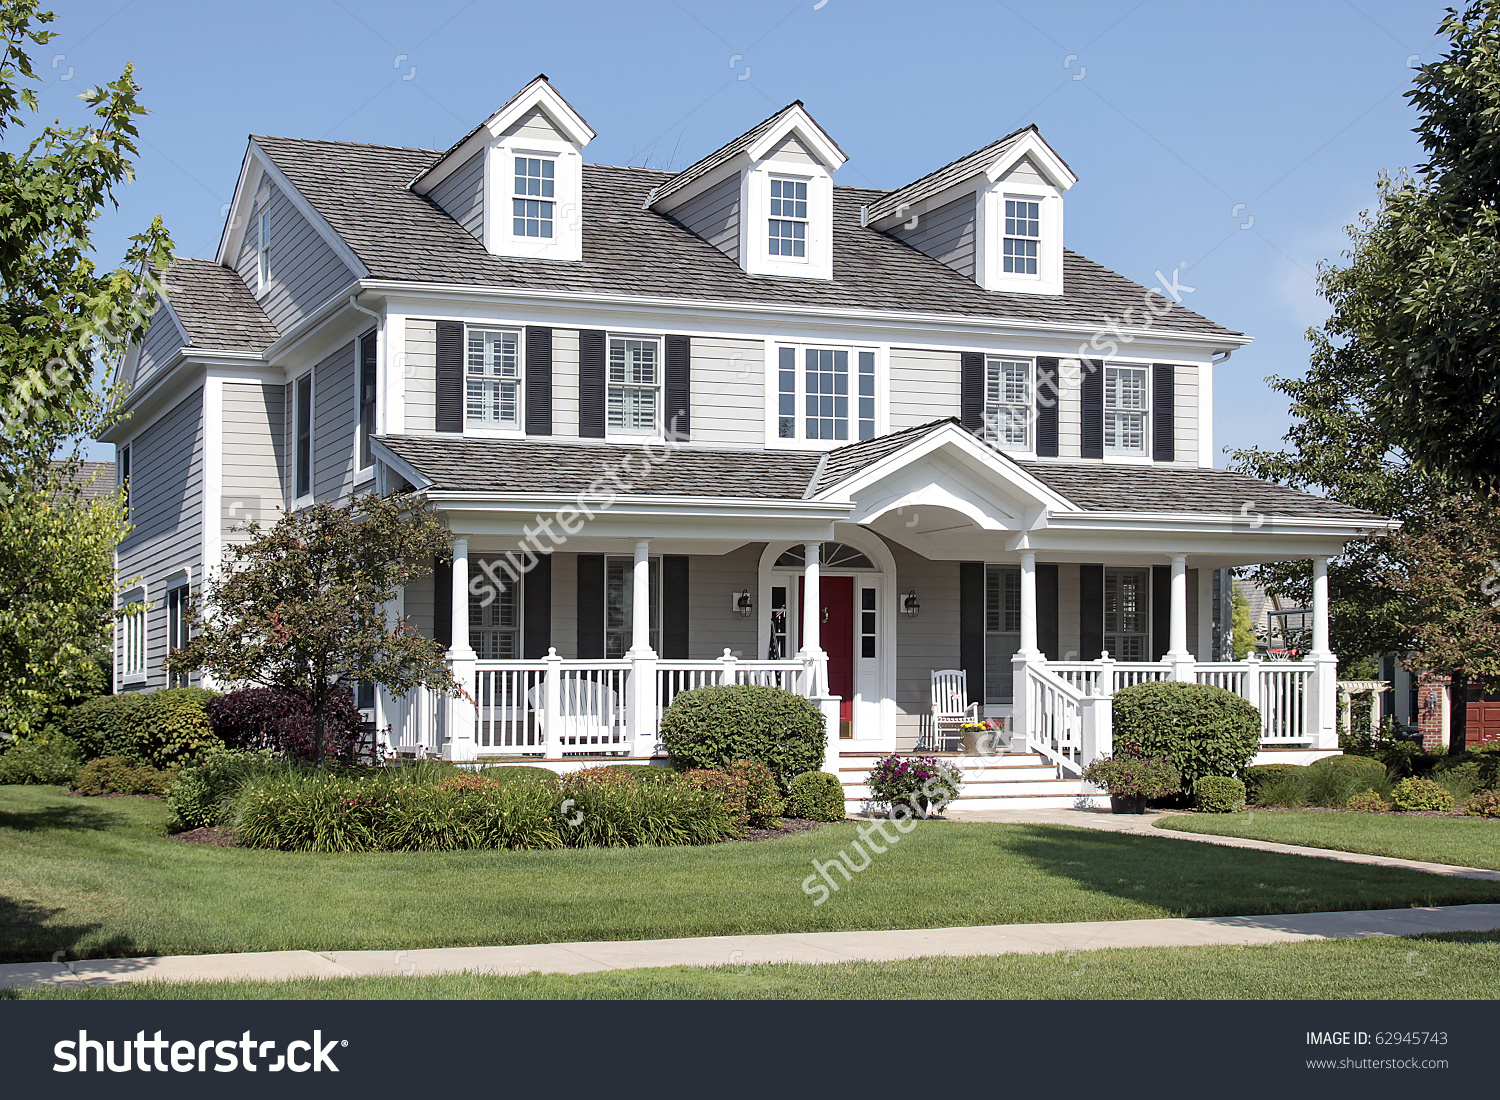 Large Suburban Home Front Porch Arched Stock Photo 62945743.